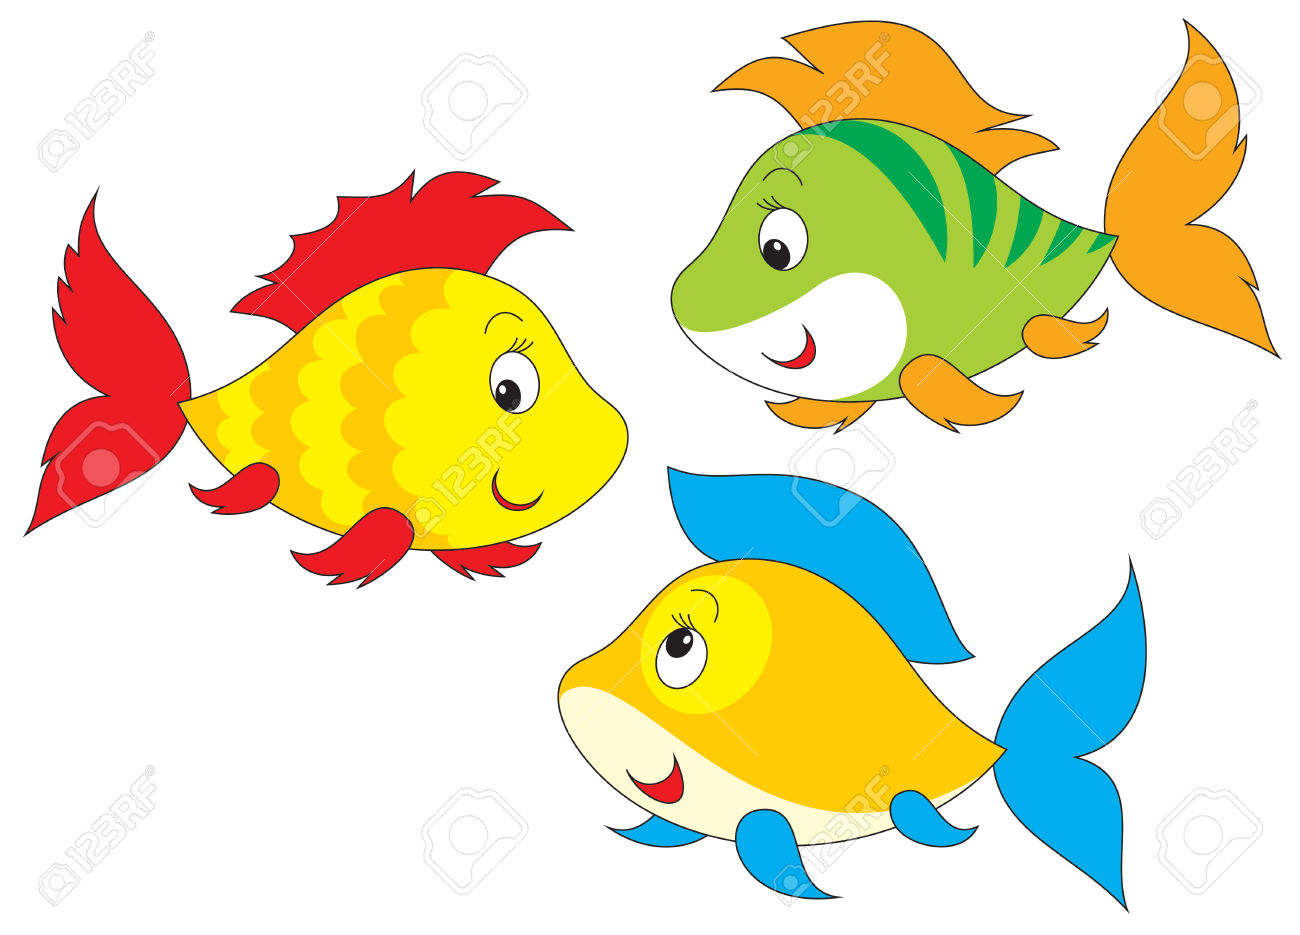 Fishes clipart 7 » Clipart Station.